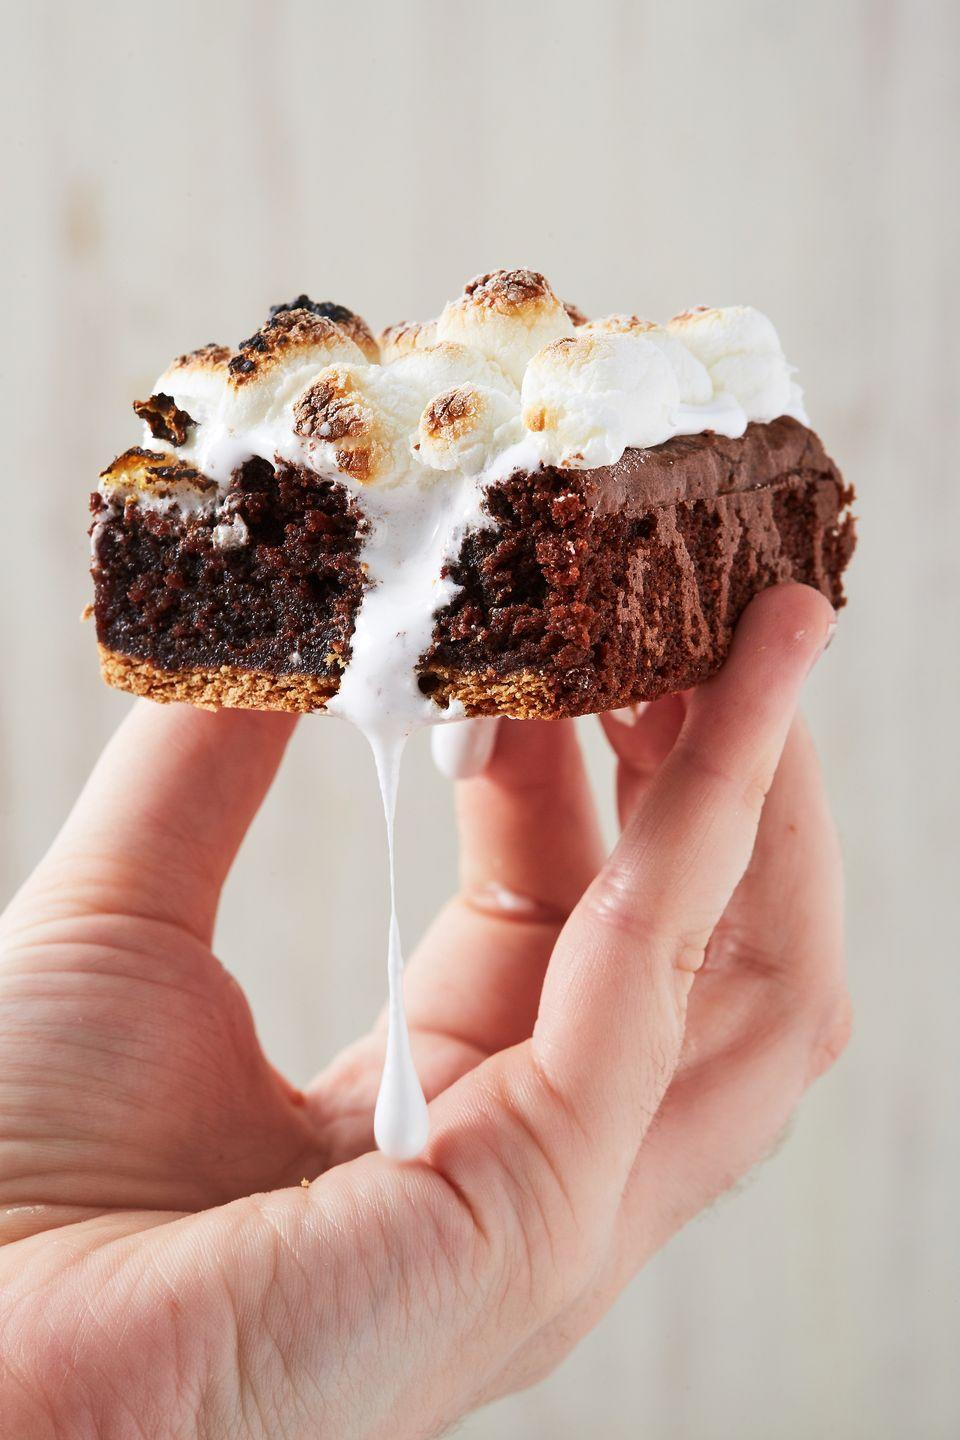 """<p>The BEST way to eat s'mores.</p><p>Get the recipe from <a href=""""https://www.delish.com/cooking/recipe-ideas/a21601837/smores-brownies-recipe/"""" rel=""""nofollow noopener"""" target=""""_blank"""" data-ylk=""""slk:Delish."""" class=""""link rapid-noclick-resp"""">Delish.</a> </p>"""